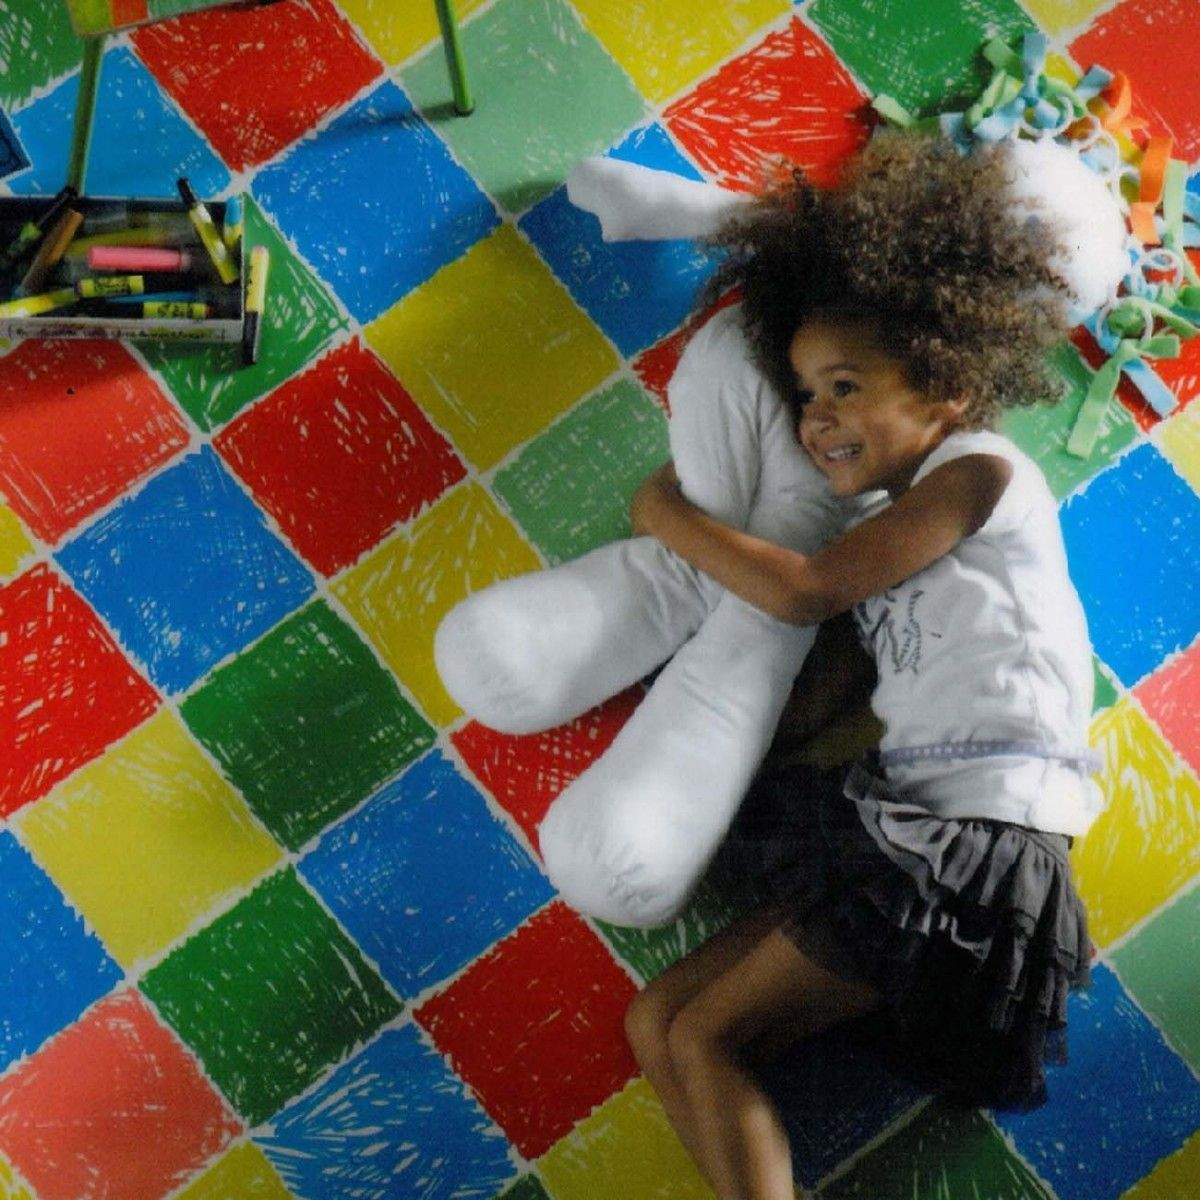 Kids Bedroom Vinyl Flooring add colours to your kids bedroom, playroom and even bathrooms with